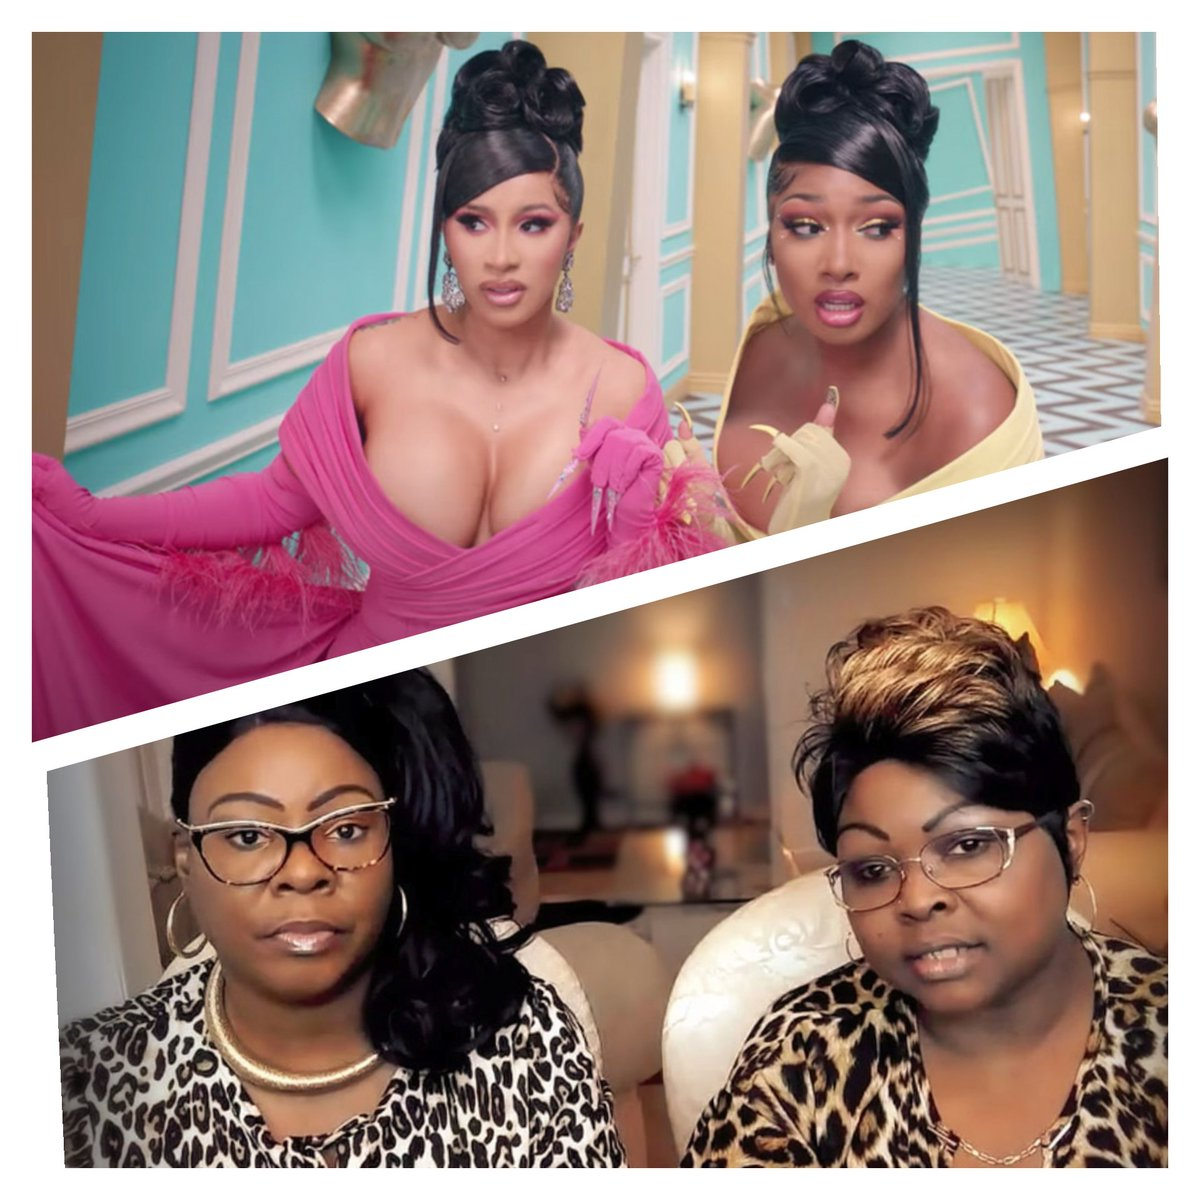 One pair is Conservative...one pair is Liberal.  Both pairs are considered media pawns by some.  Which pair should I let my daughter follow? 🤔 #TeamJesus #wisdom #wap @DiamondandSilk @MeganTheeSource @iamcardib #diamondandsilk https://t.co/2LcRtCedAs